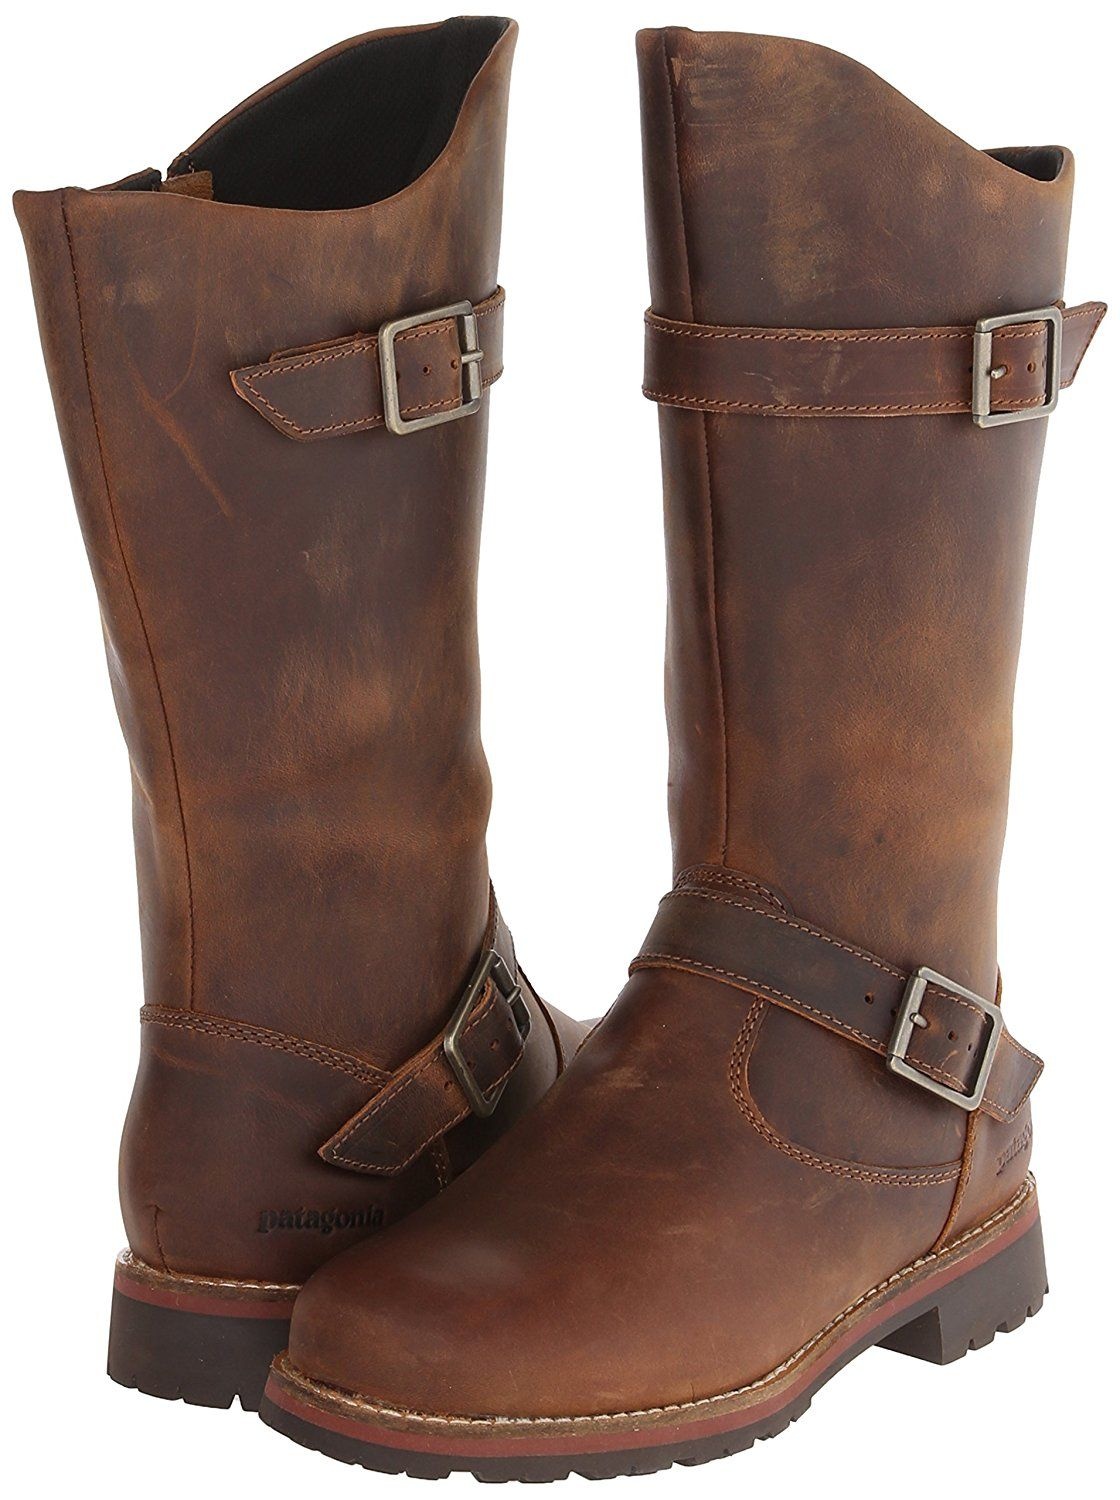 Amazon Com Patagonia Women S Tin Shed Riding Boot Snow